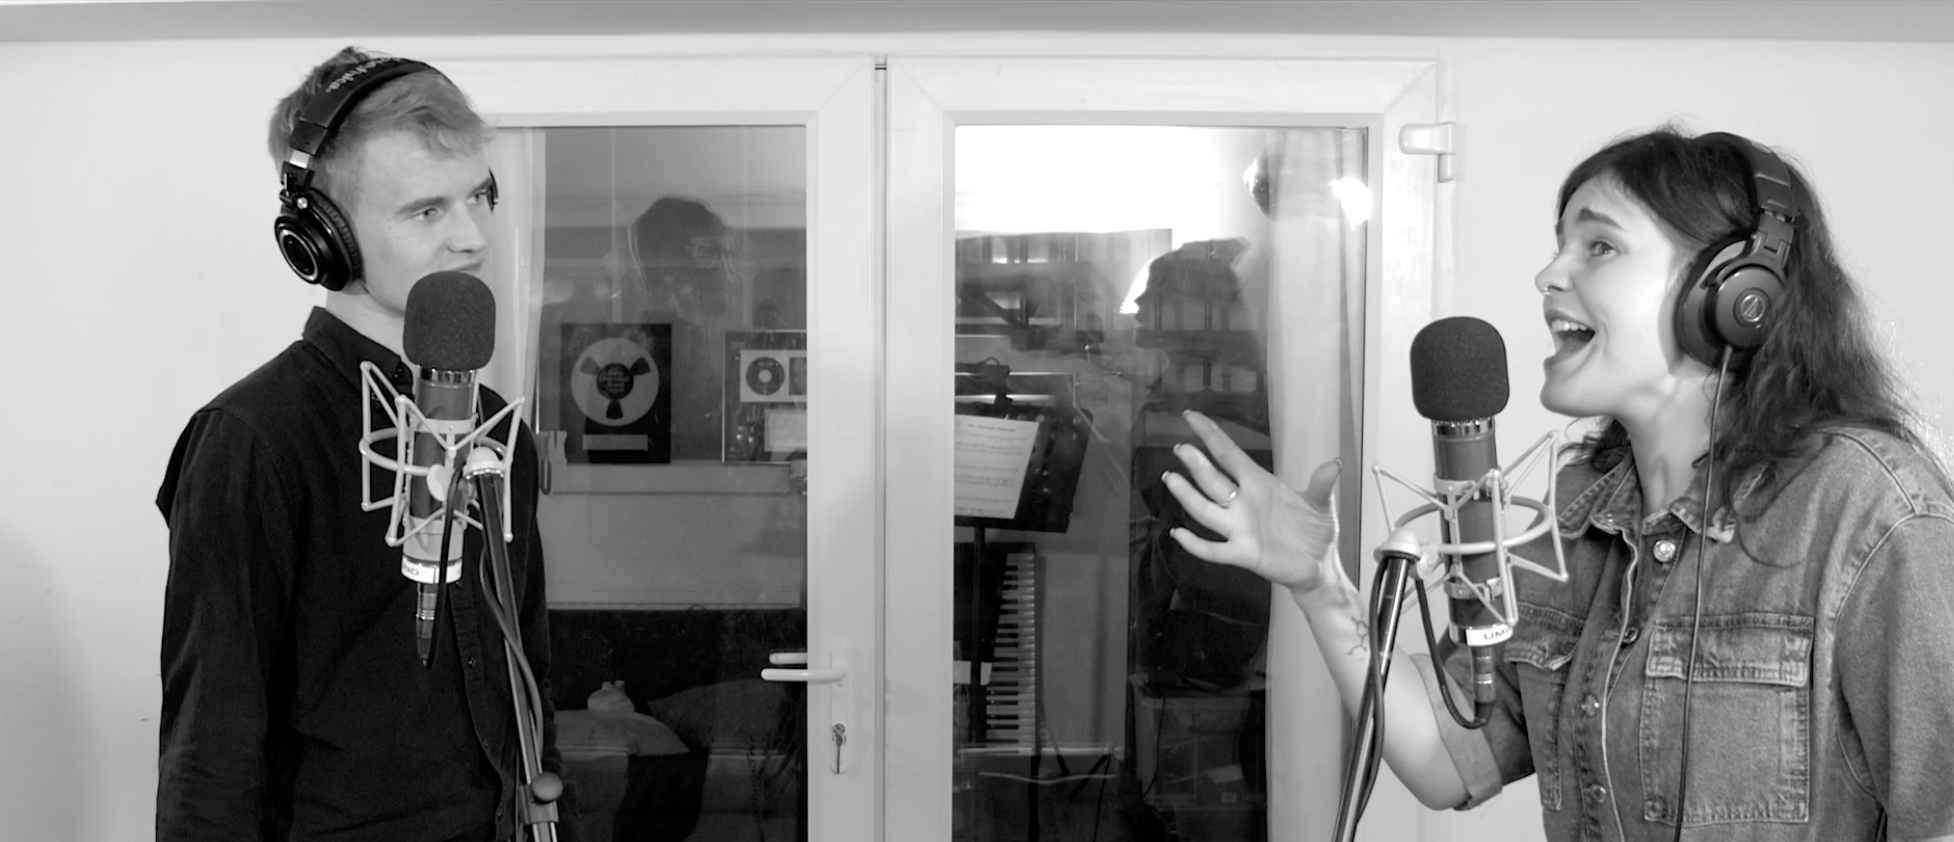 Watch Millie O'Connell and Luke Bayer Perform 'Wishing for the Normal' From Soho Cinders